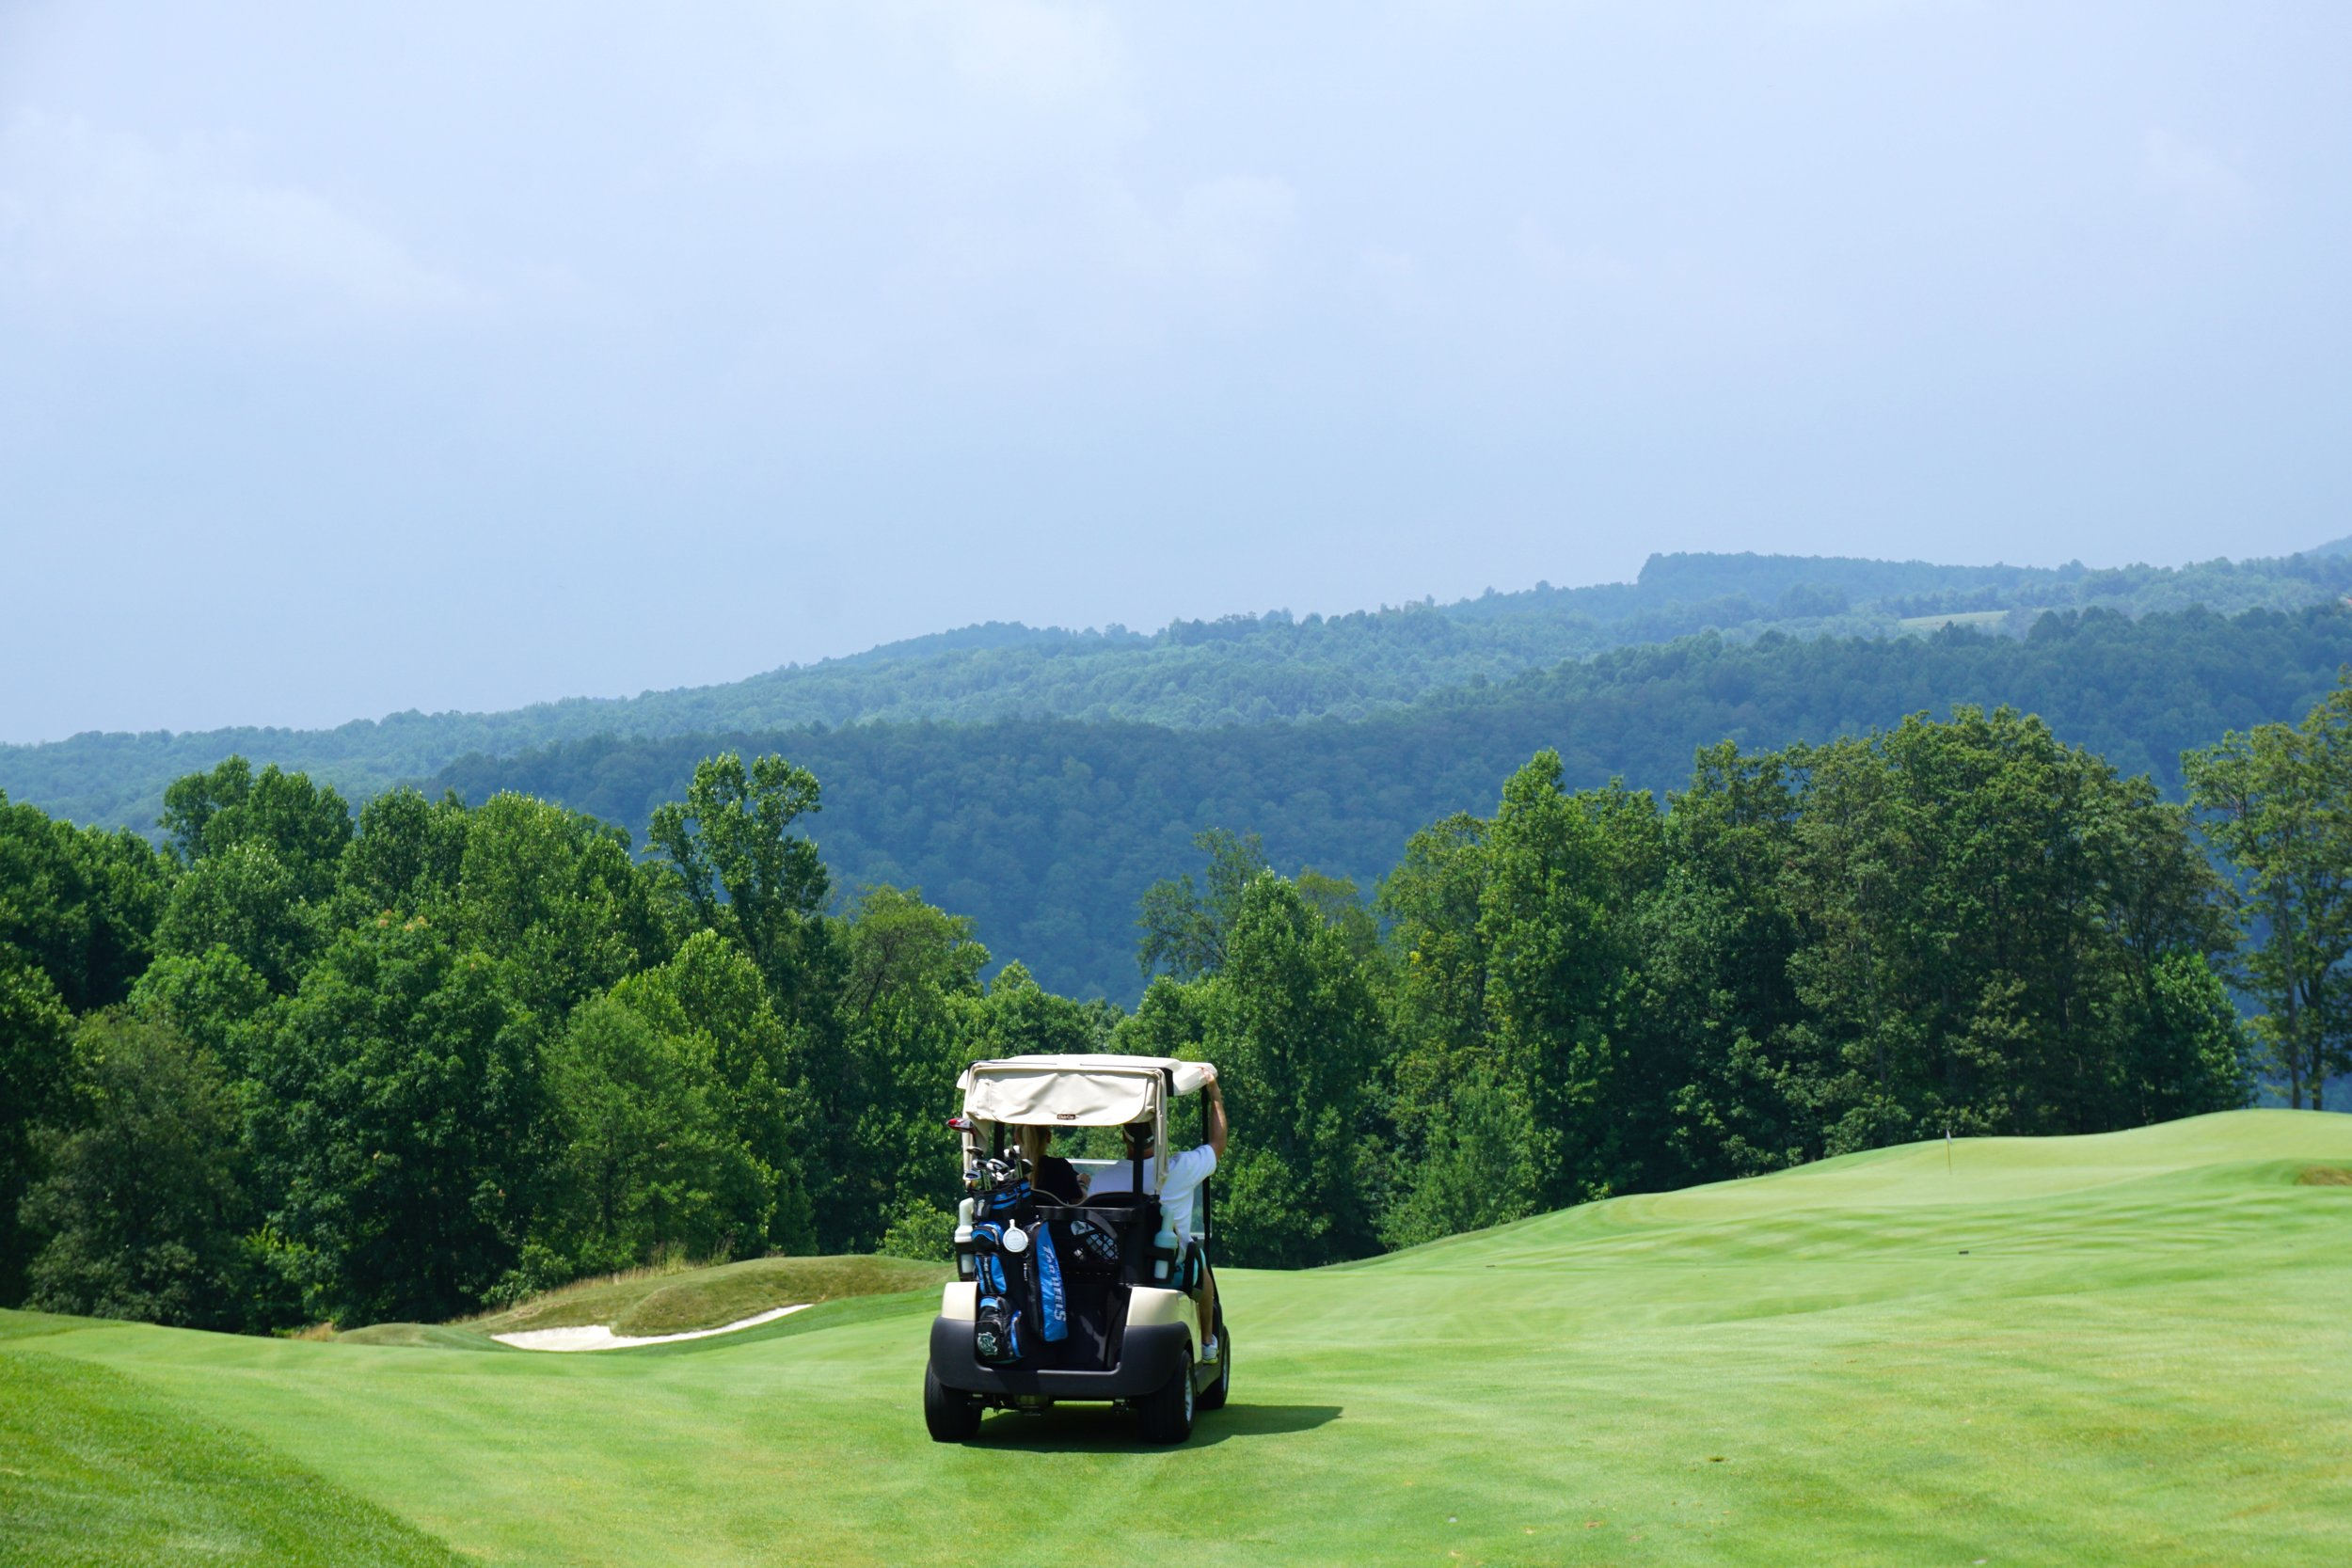 country clubs & sports clubs -